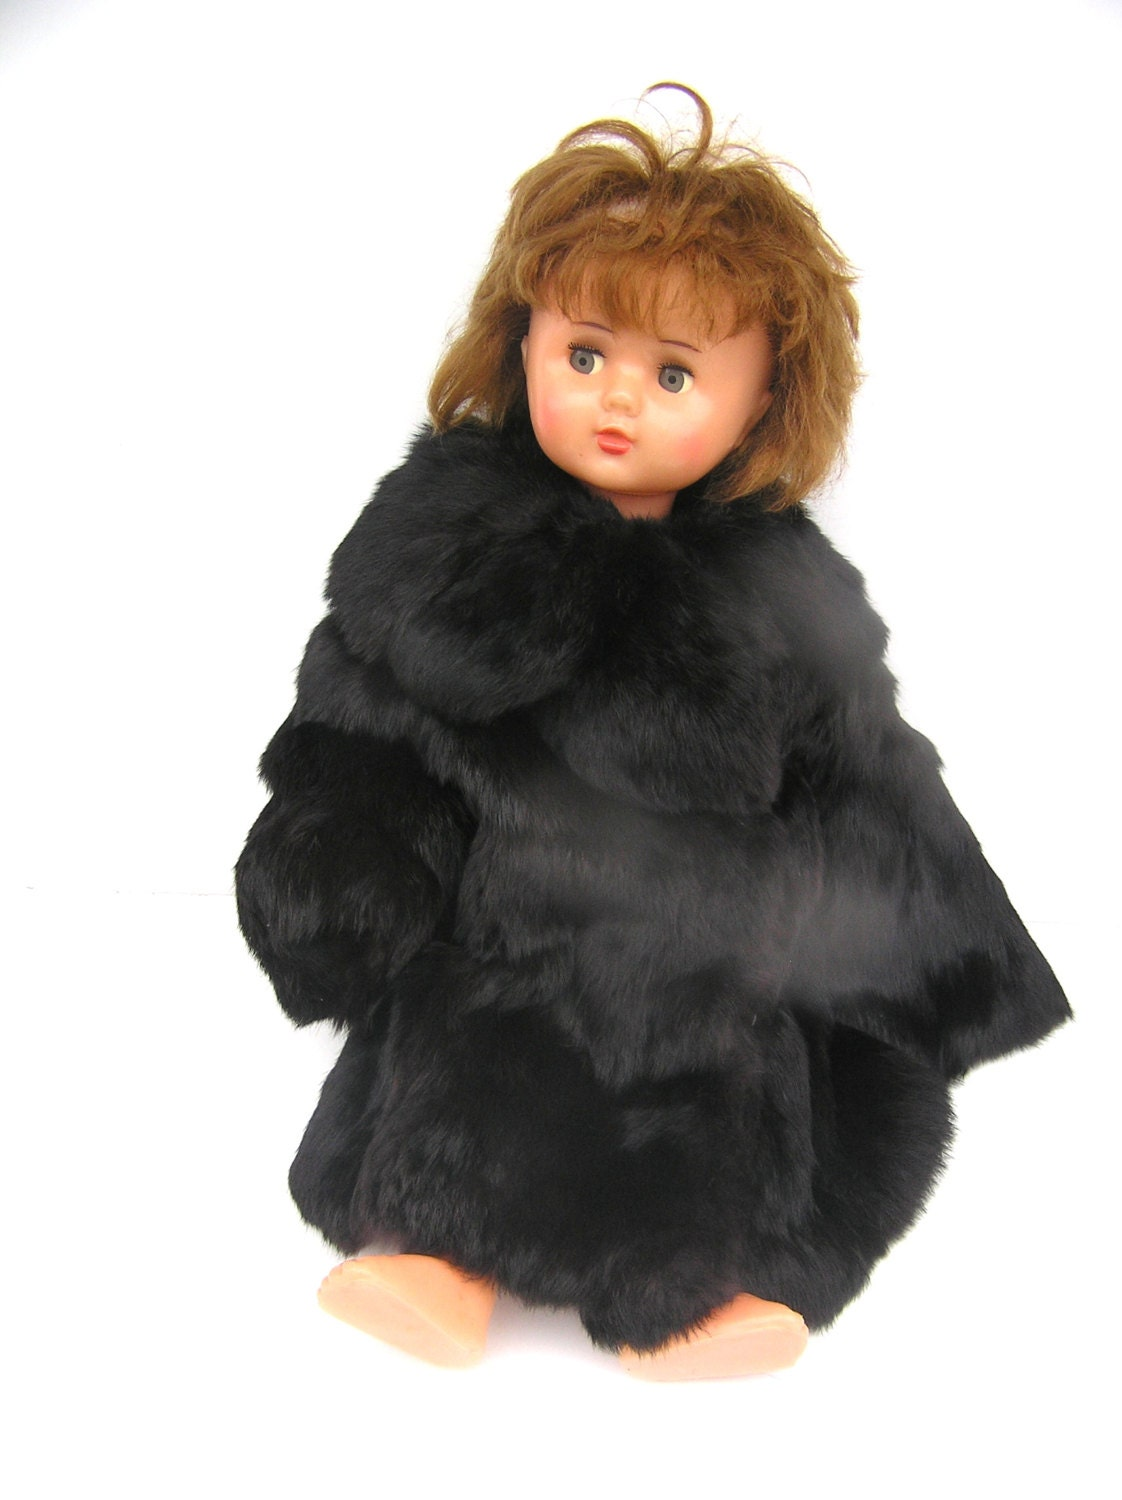 You searched for: kids fur coat! Etsy is the home to thousands of handmade, vintage, and one-of-a-kind products and gifts related to your search. No matter what you're looking for or where you are in the world, our global marketplace of sellers can help you find unique and affordable options. Let's get started!